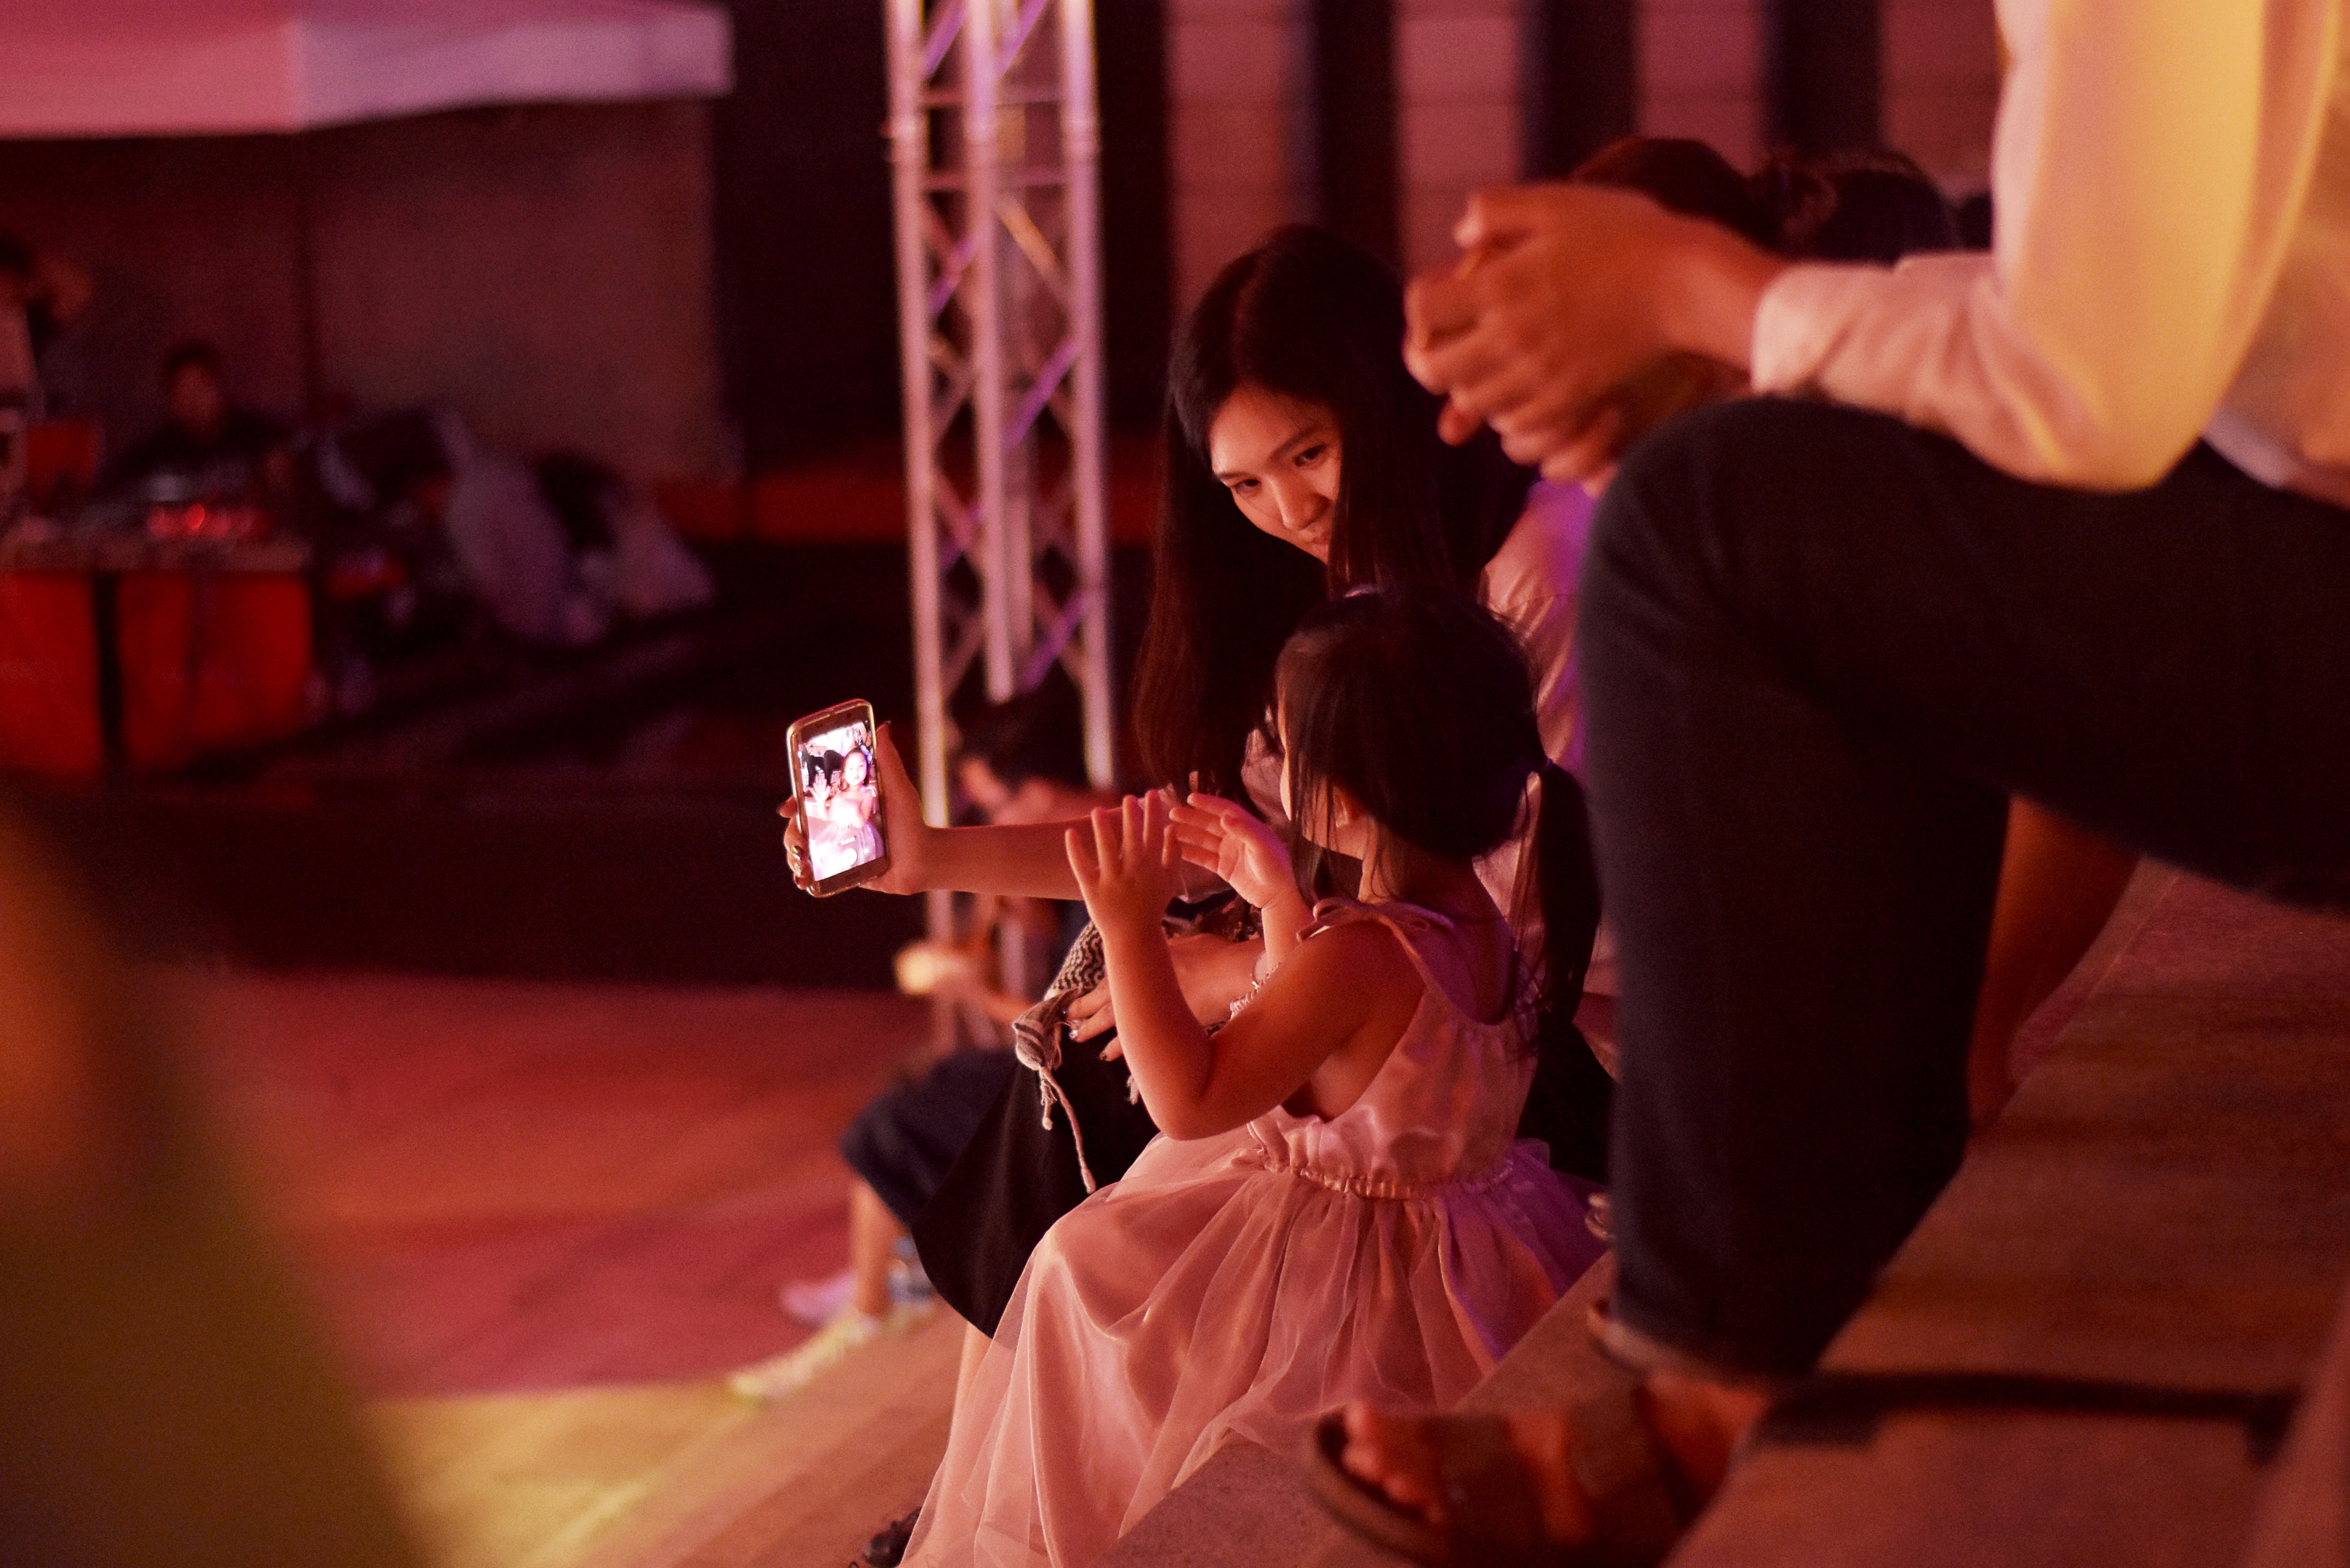 woman holding smartphone and girl sitting wearing white dress photo